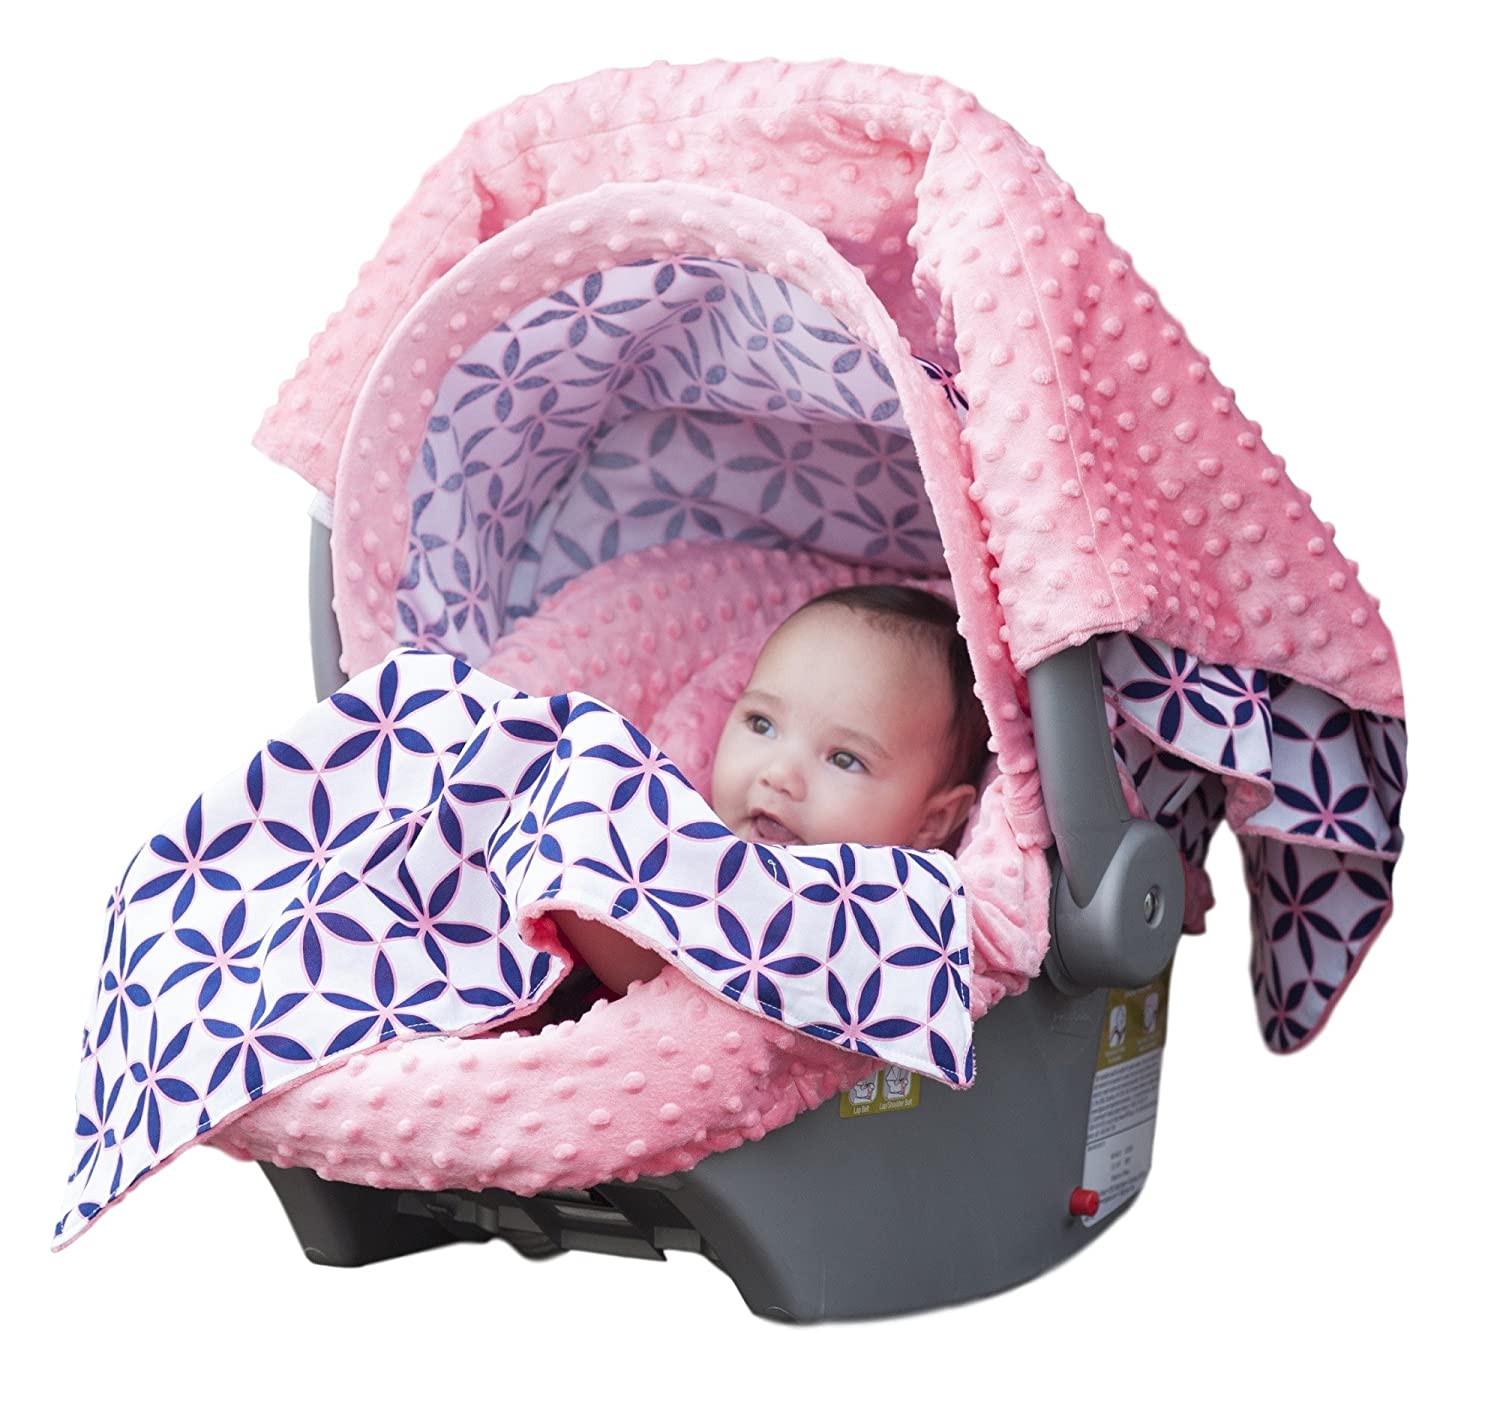 B00I8YS6QA Carseat Canopy Whole Caboodle - Kendra 81PCvvLccdL